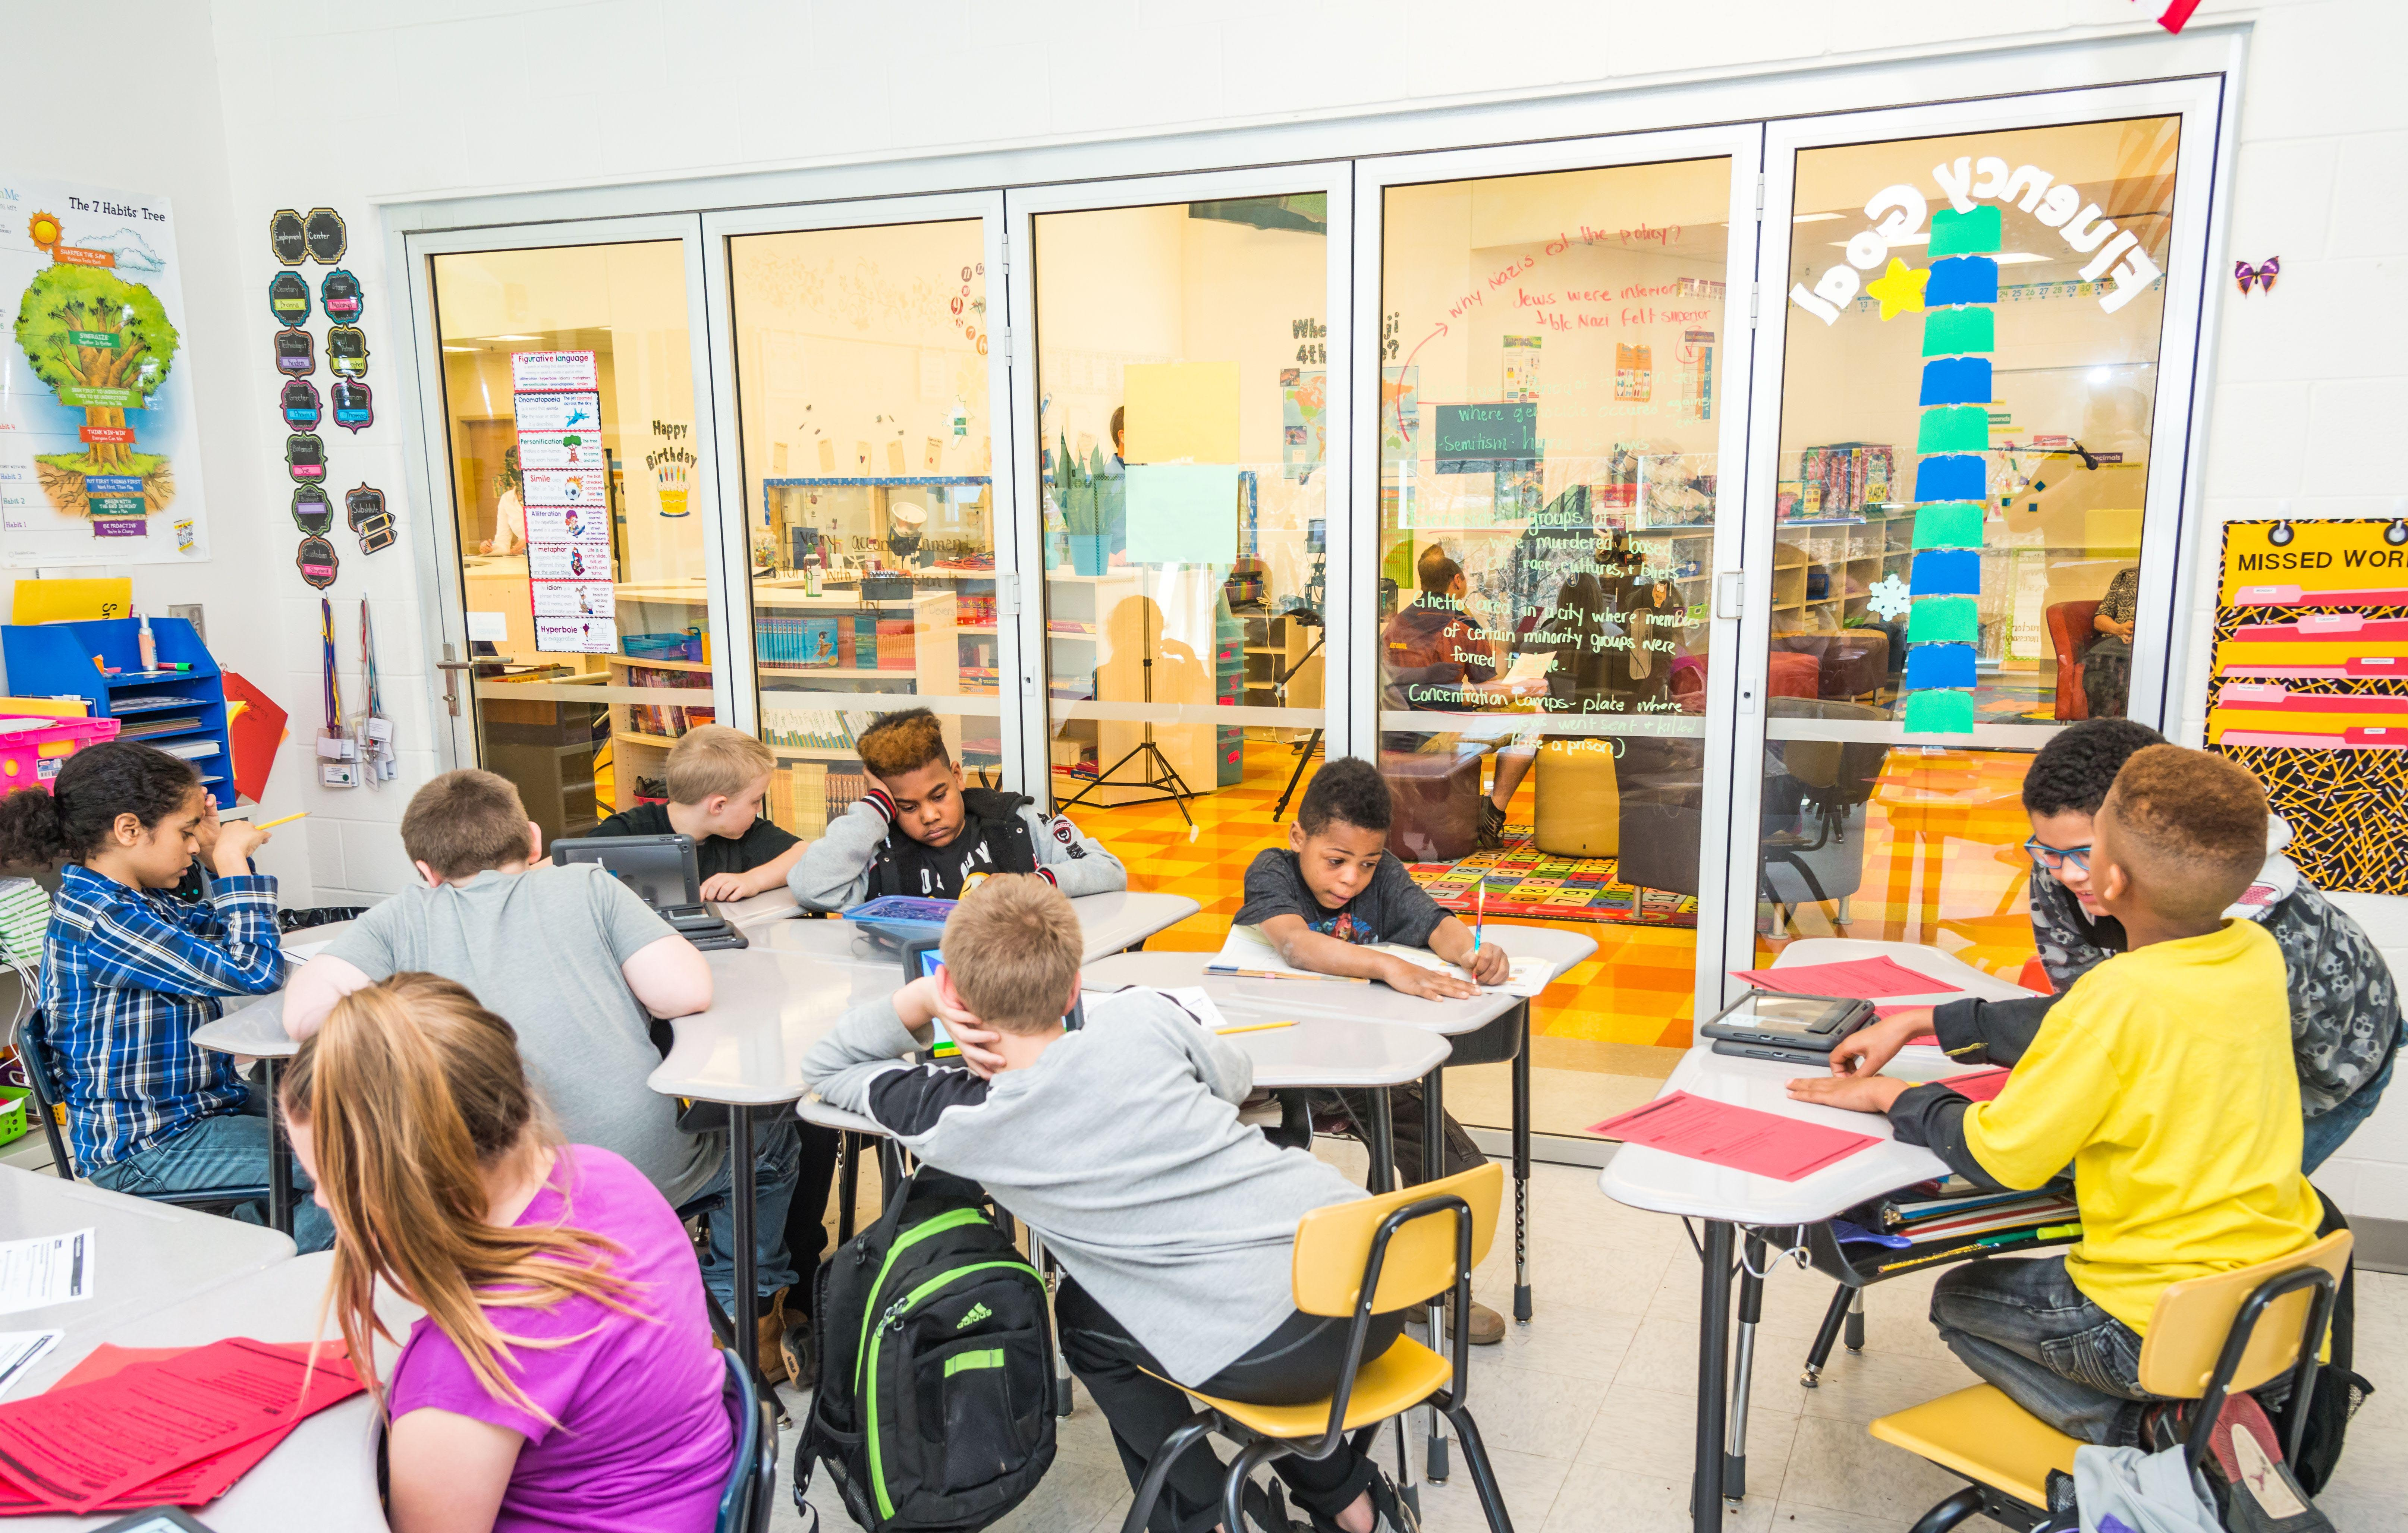 Acoustics-in-the-classroom-controlled-with-folding-glass-walls